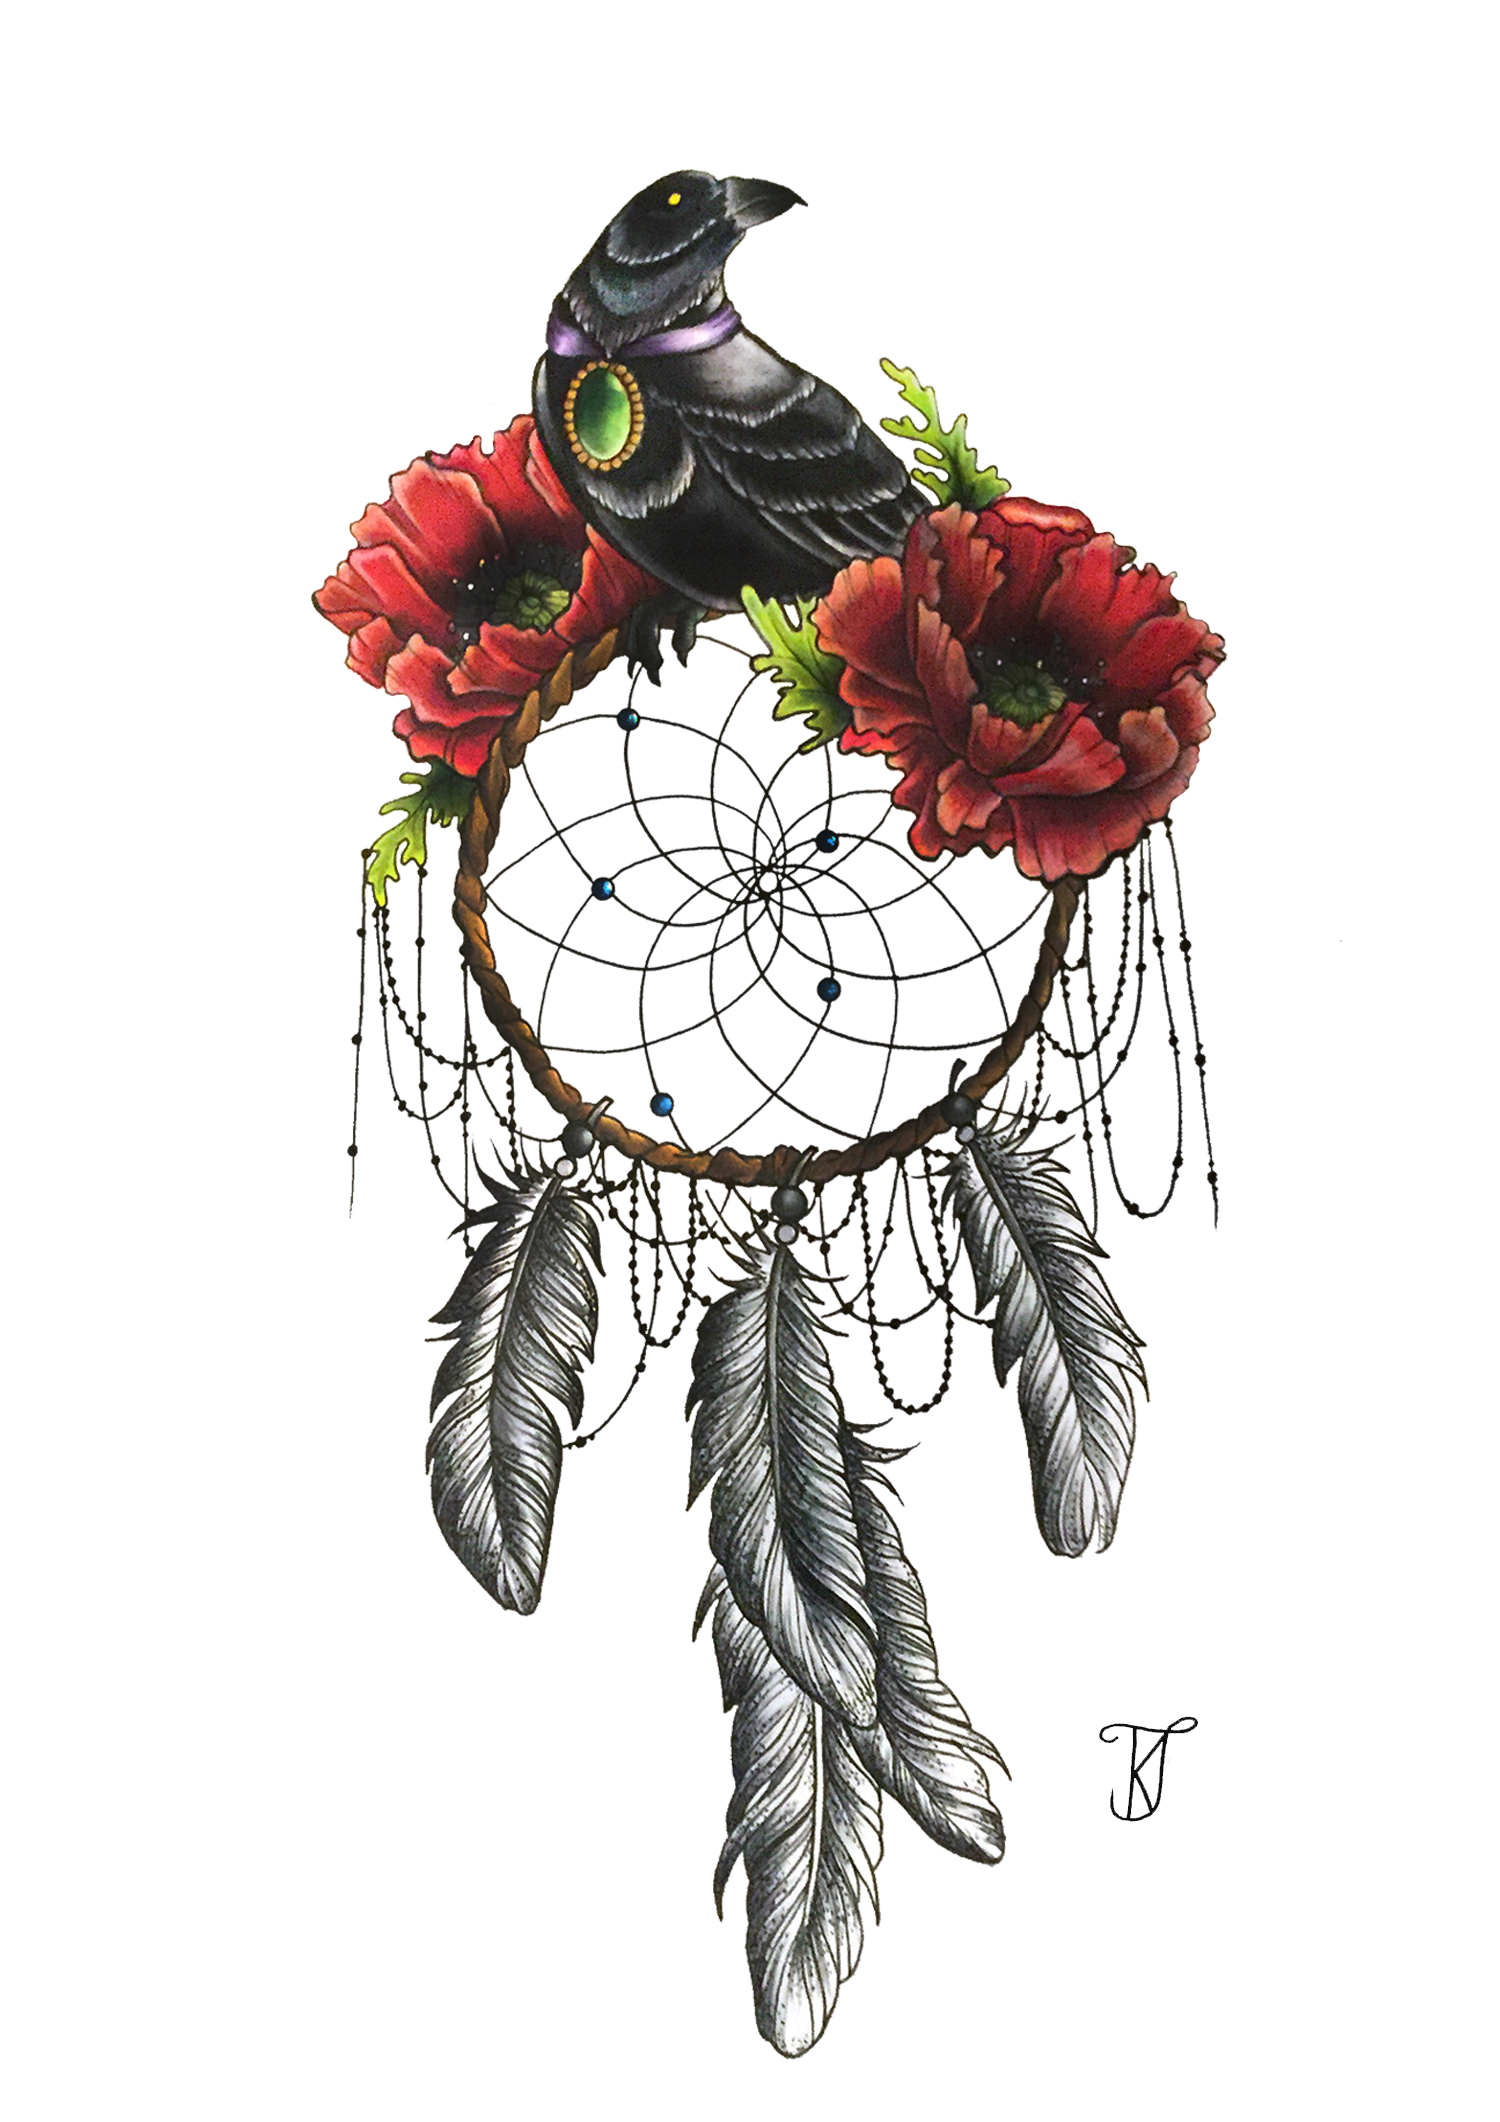 Tattoo Flower Poppy Bird Dreamcatcher Free Clipart HQ PNG Image